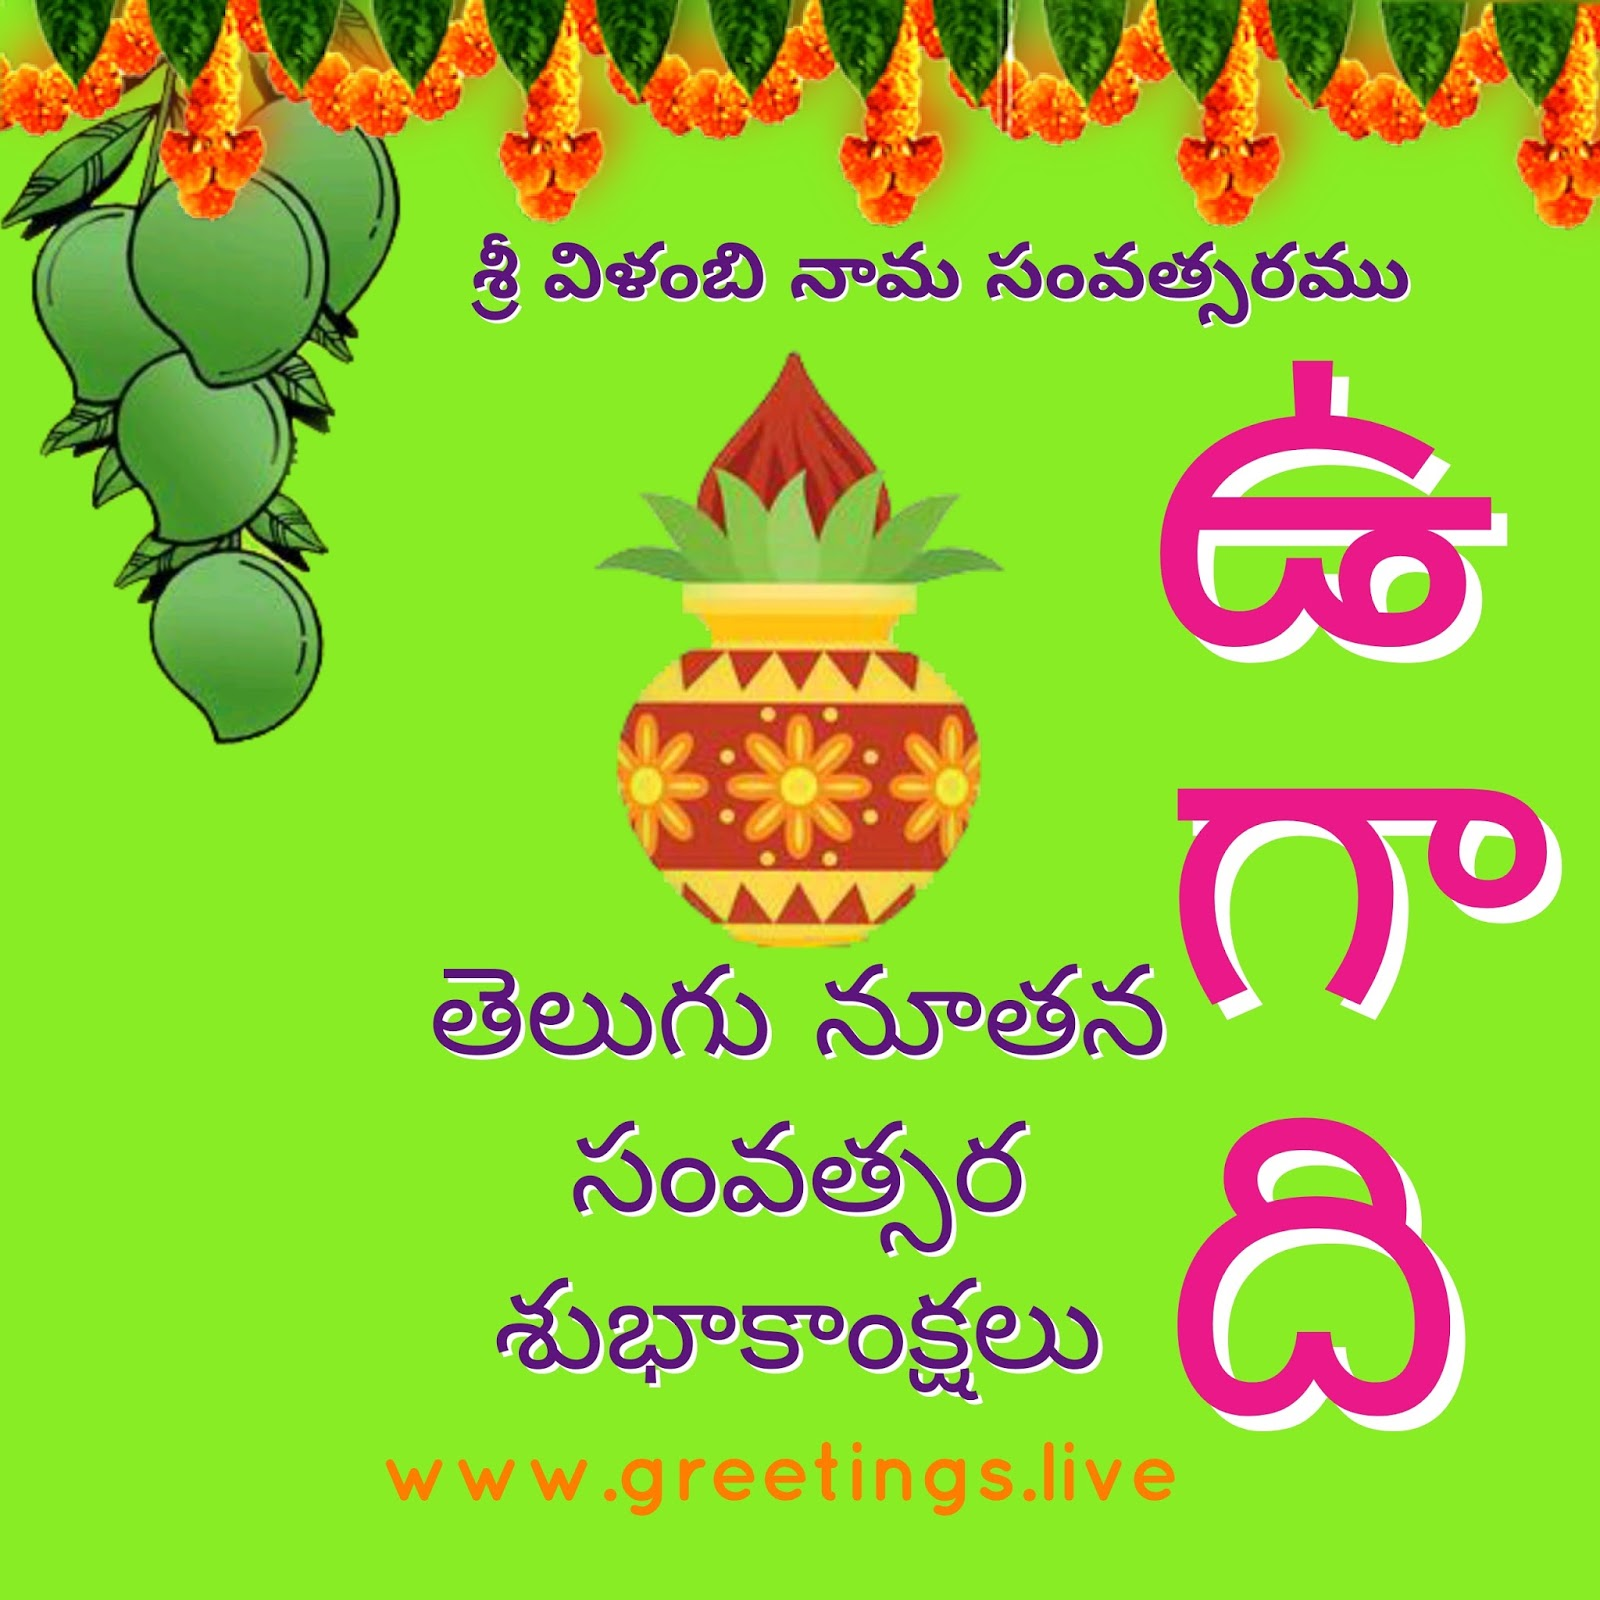 Telugu new quotes in this week good words ugadi 2018 telugu greetings collections hd m4hsunfo Image collections